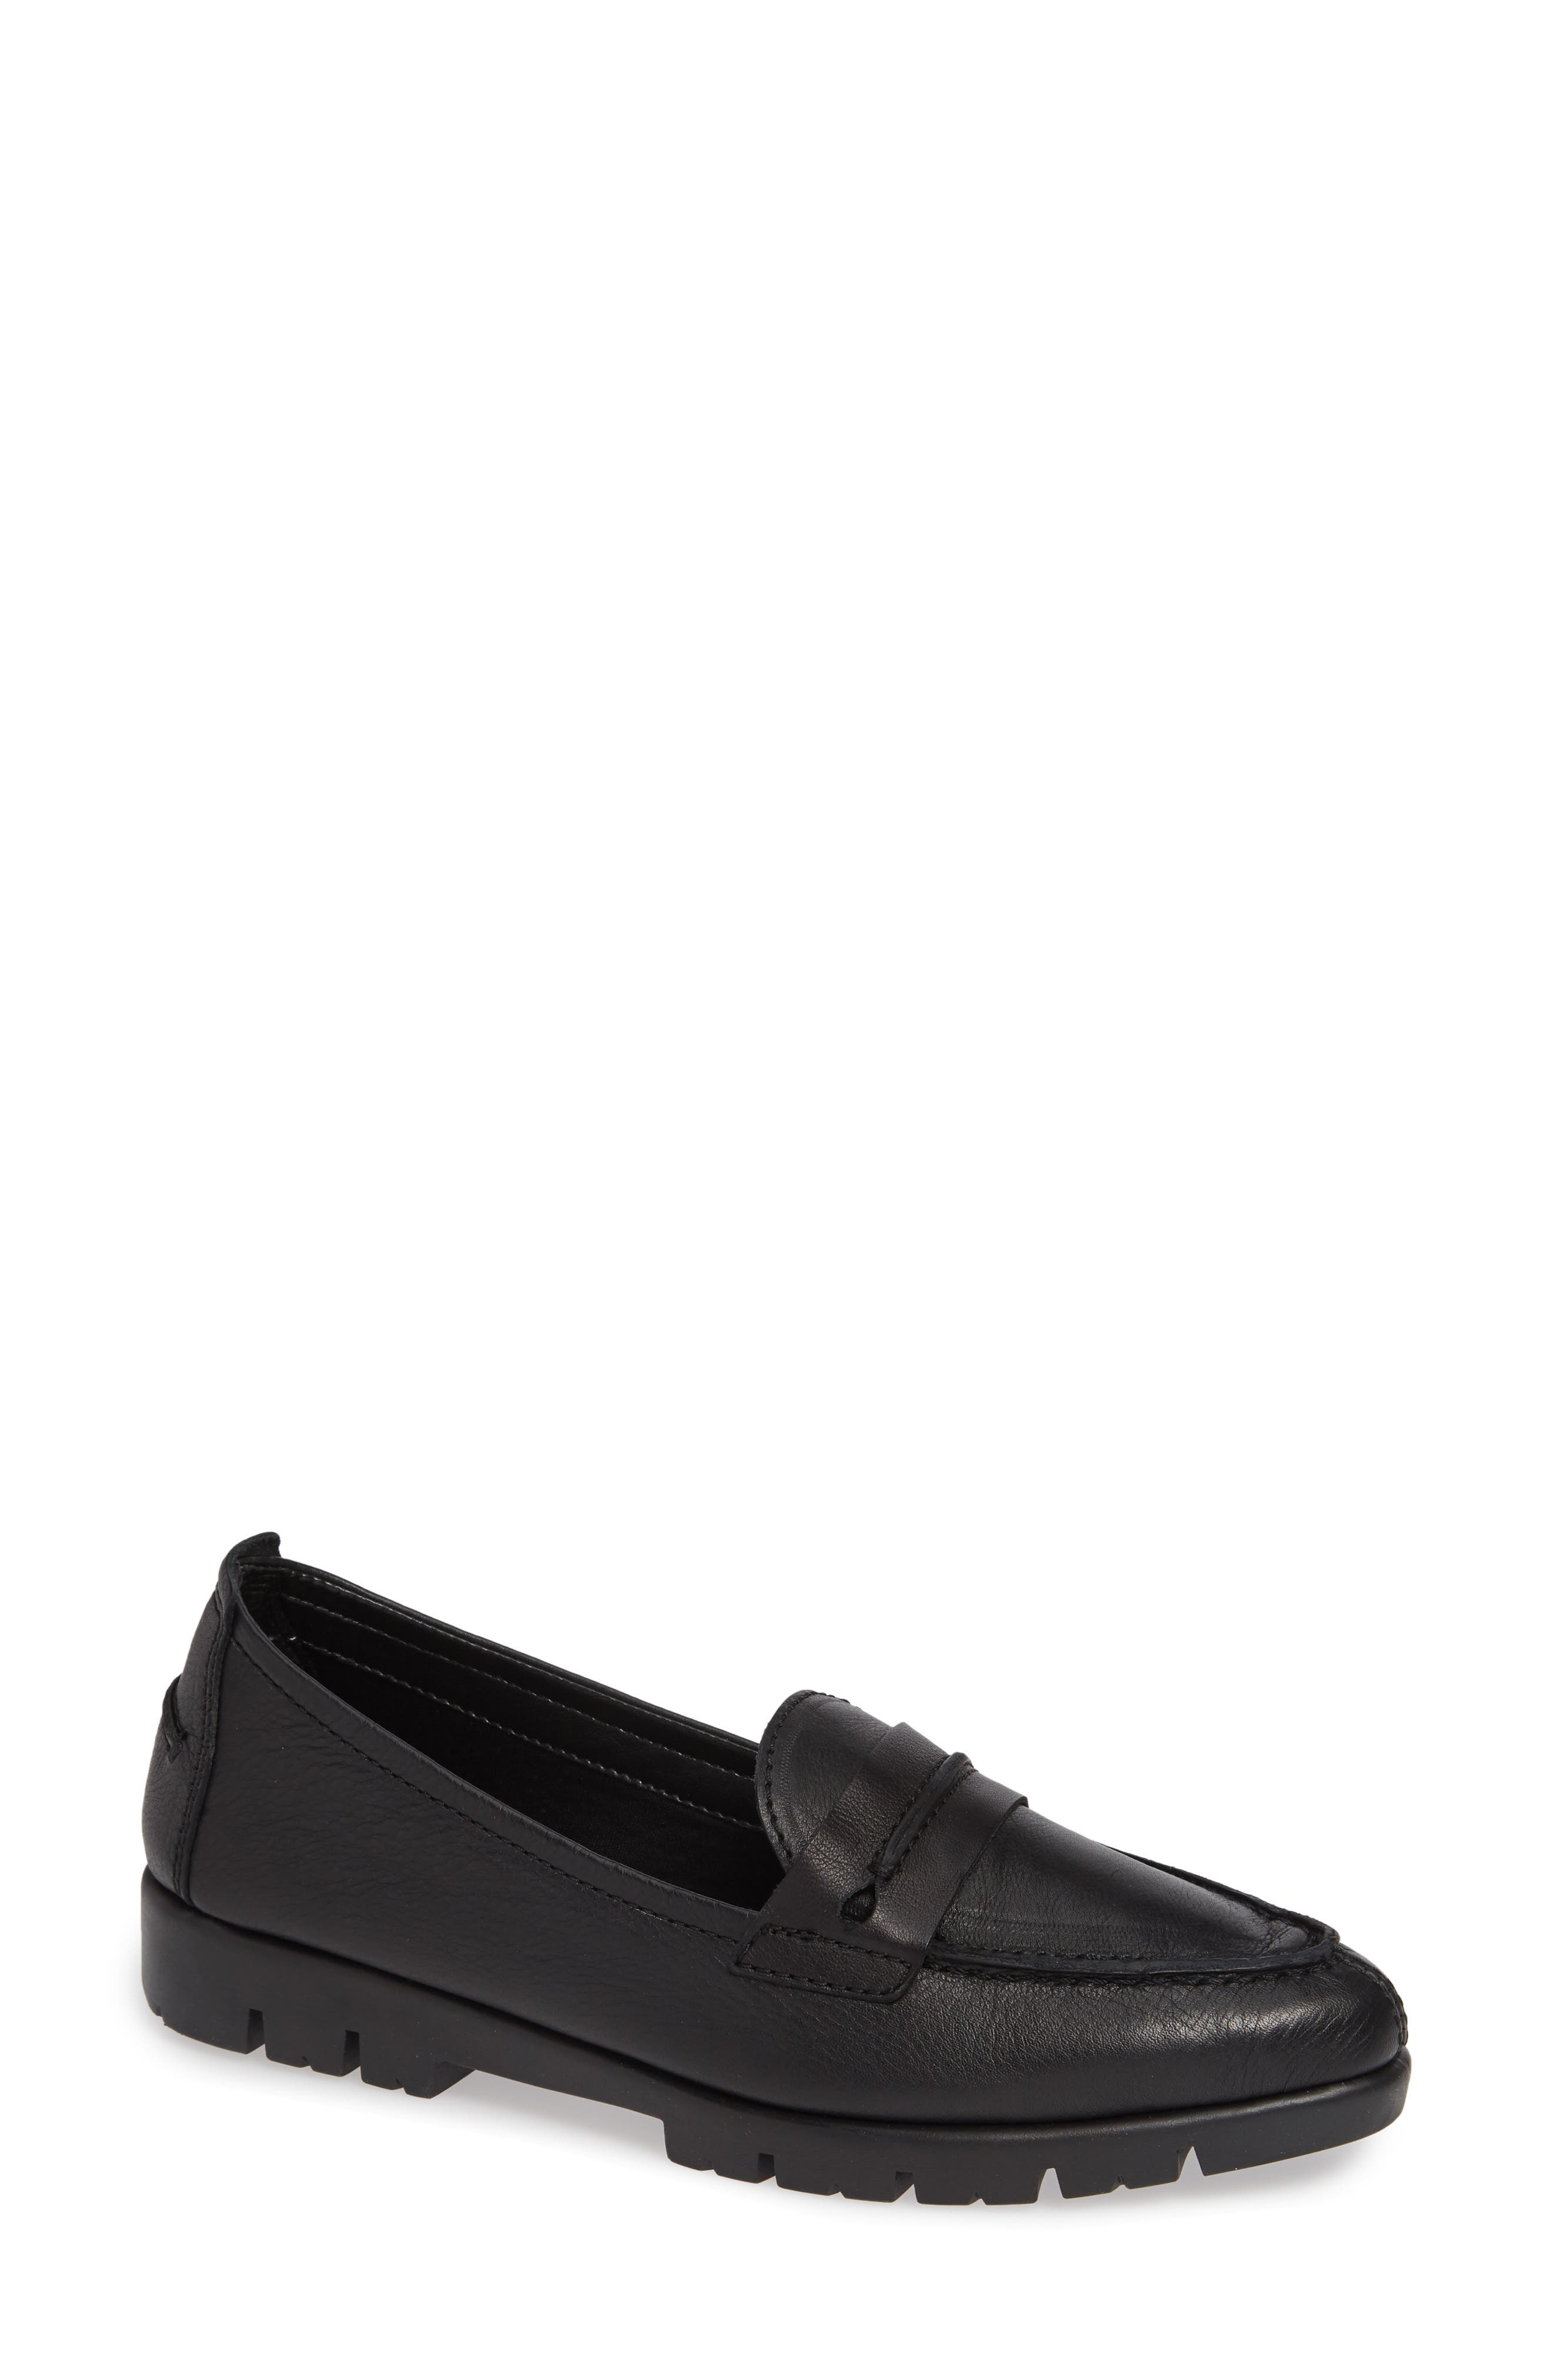 THE FLEXX, Moc A Go Loafer, Main thumbnail 1, color, BLACK LEATHER